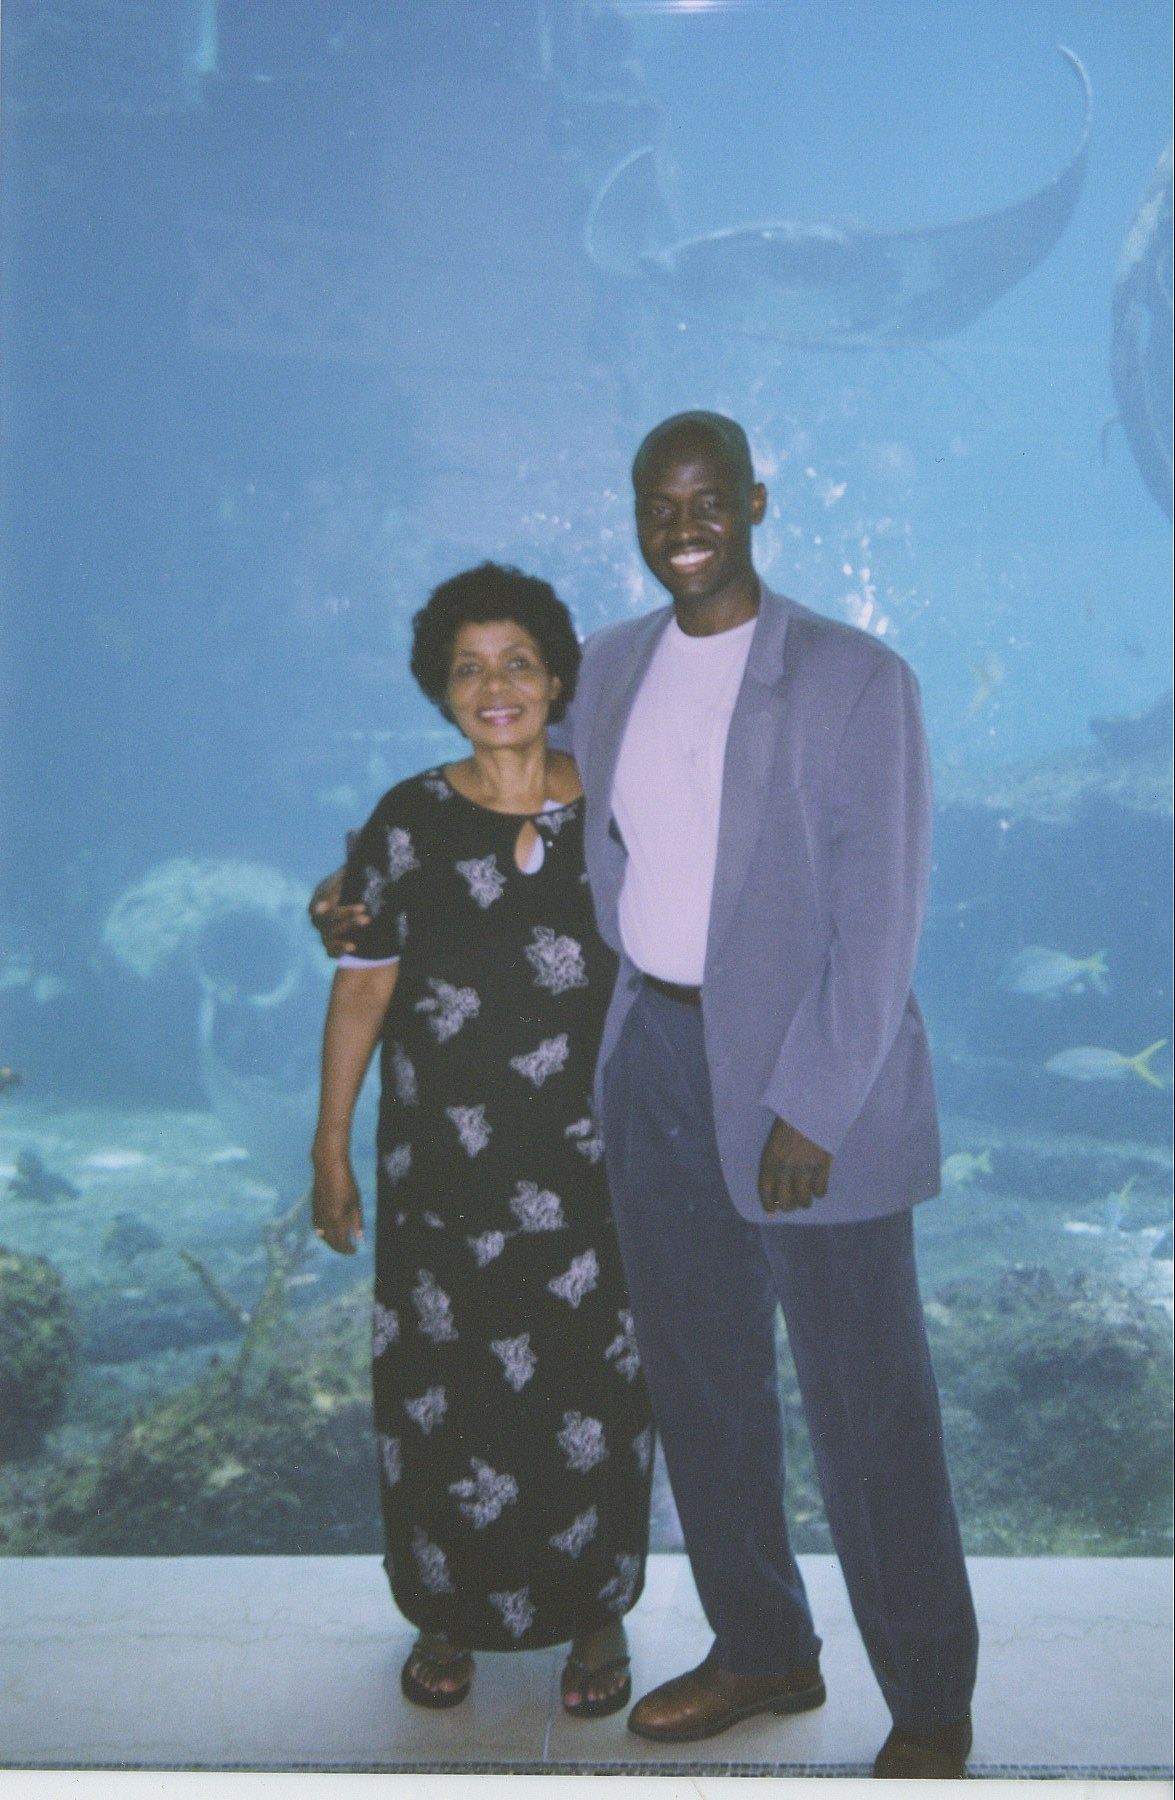 My mom and I maintained our tradition of occasionally vacationing together to make up for living in different cities. While residing in Washington, DC, I took her to the Atlantis Resort in the Bahamas, where we checked out its well-known aquarium.